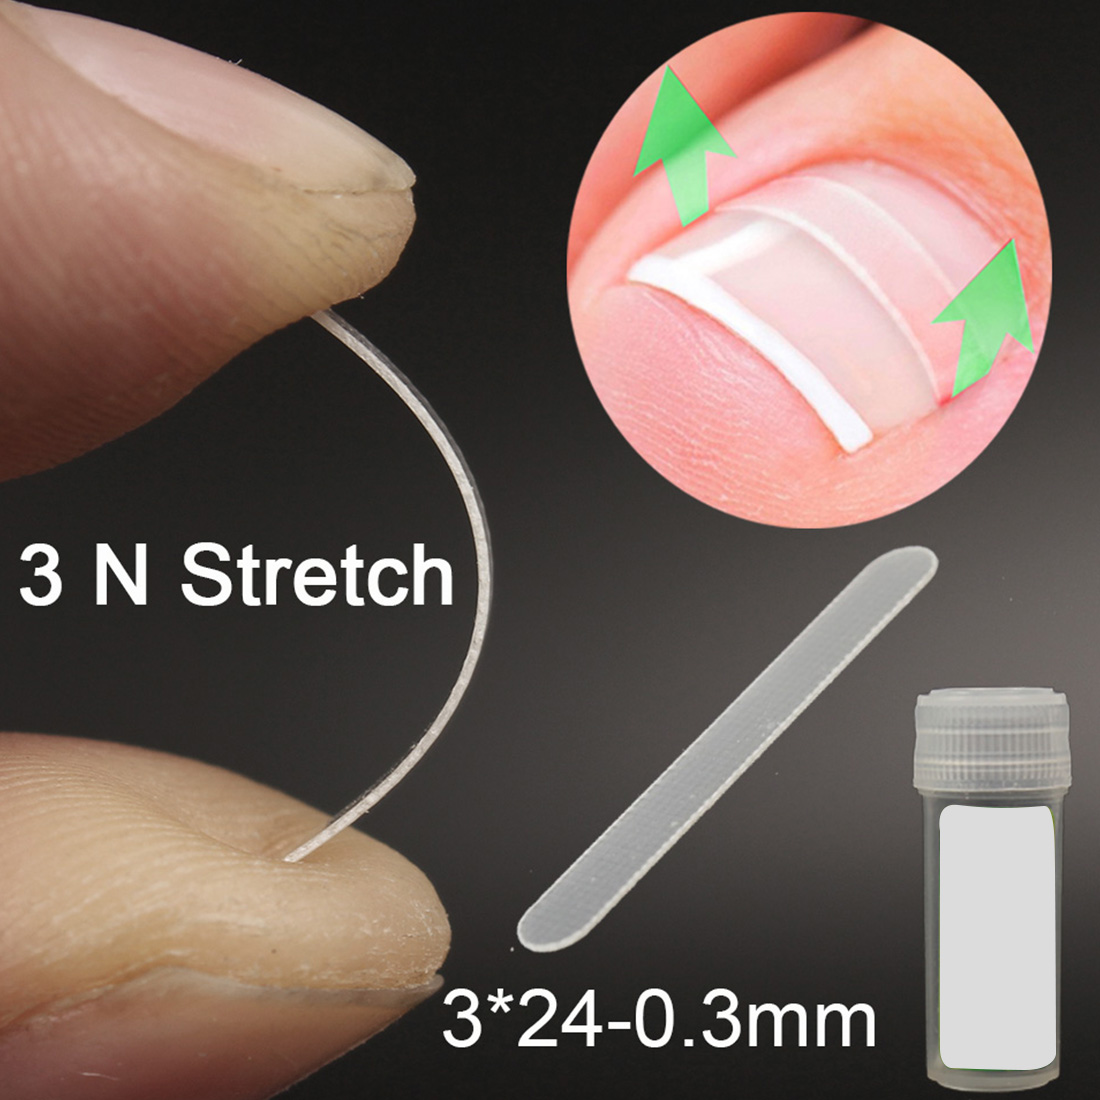 10pcs Ingrown Toenail Correction Tool Ingrown Toe Nail Treatment Elastic Patch Sticker Straightening Clip Brace Pedicure Tool